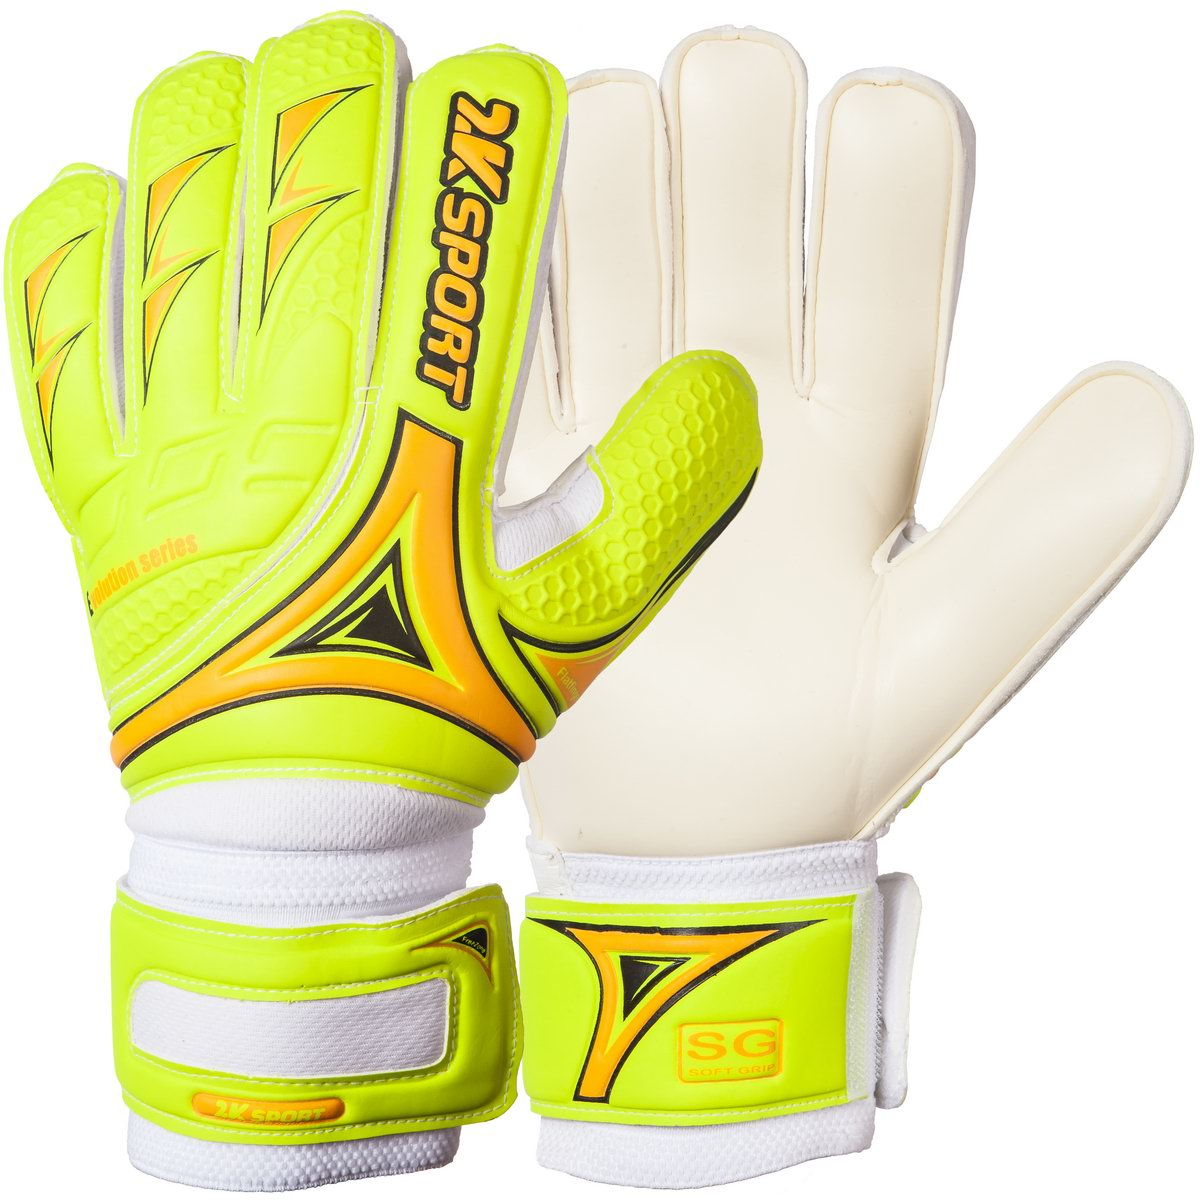 2K SPORT EVOLUTION 124915 neon-lemon/orange